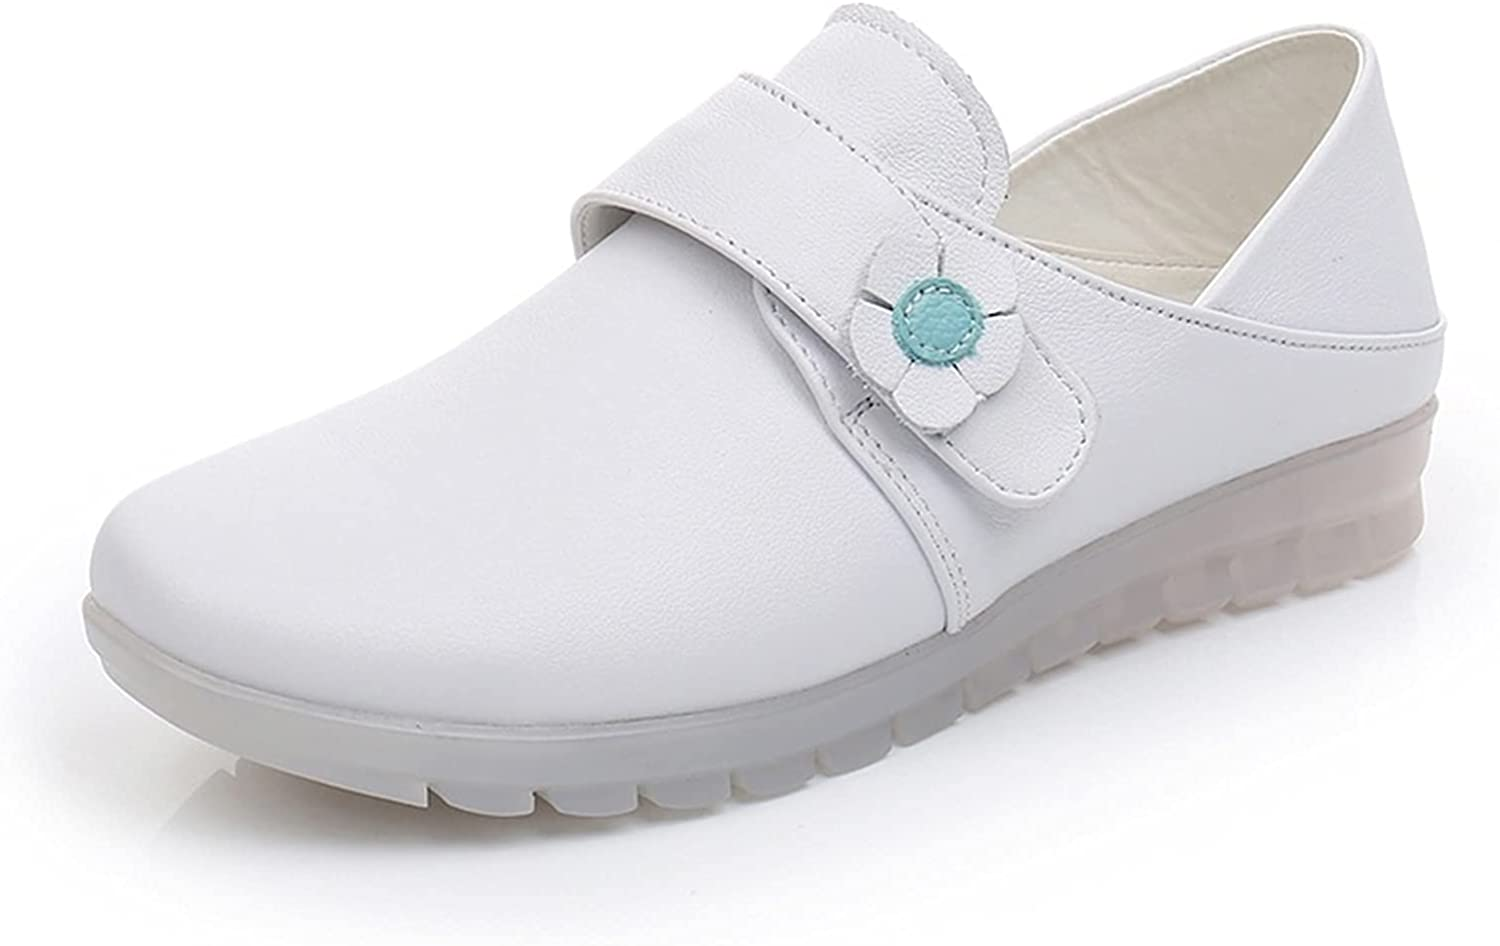 RRUUGK Slip-ons for Women free shipping Flat Shoes Loop 55% OFF Strap Hook